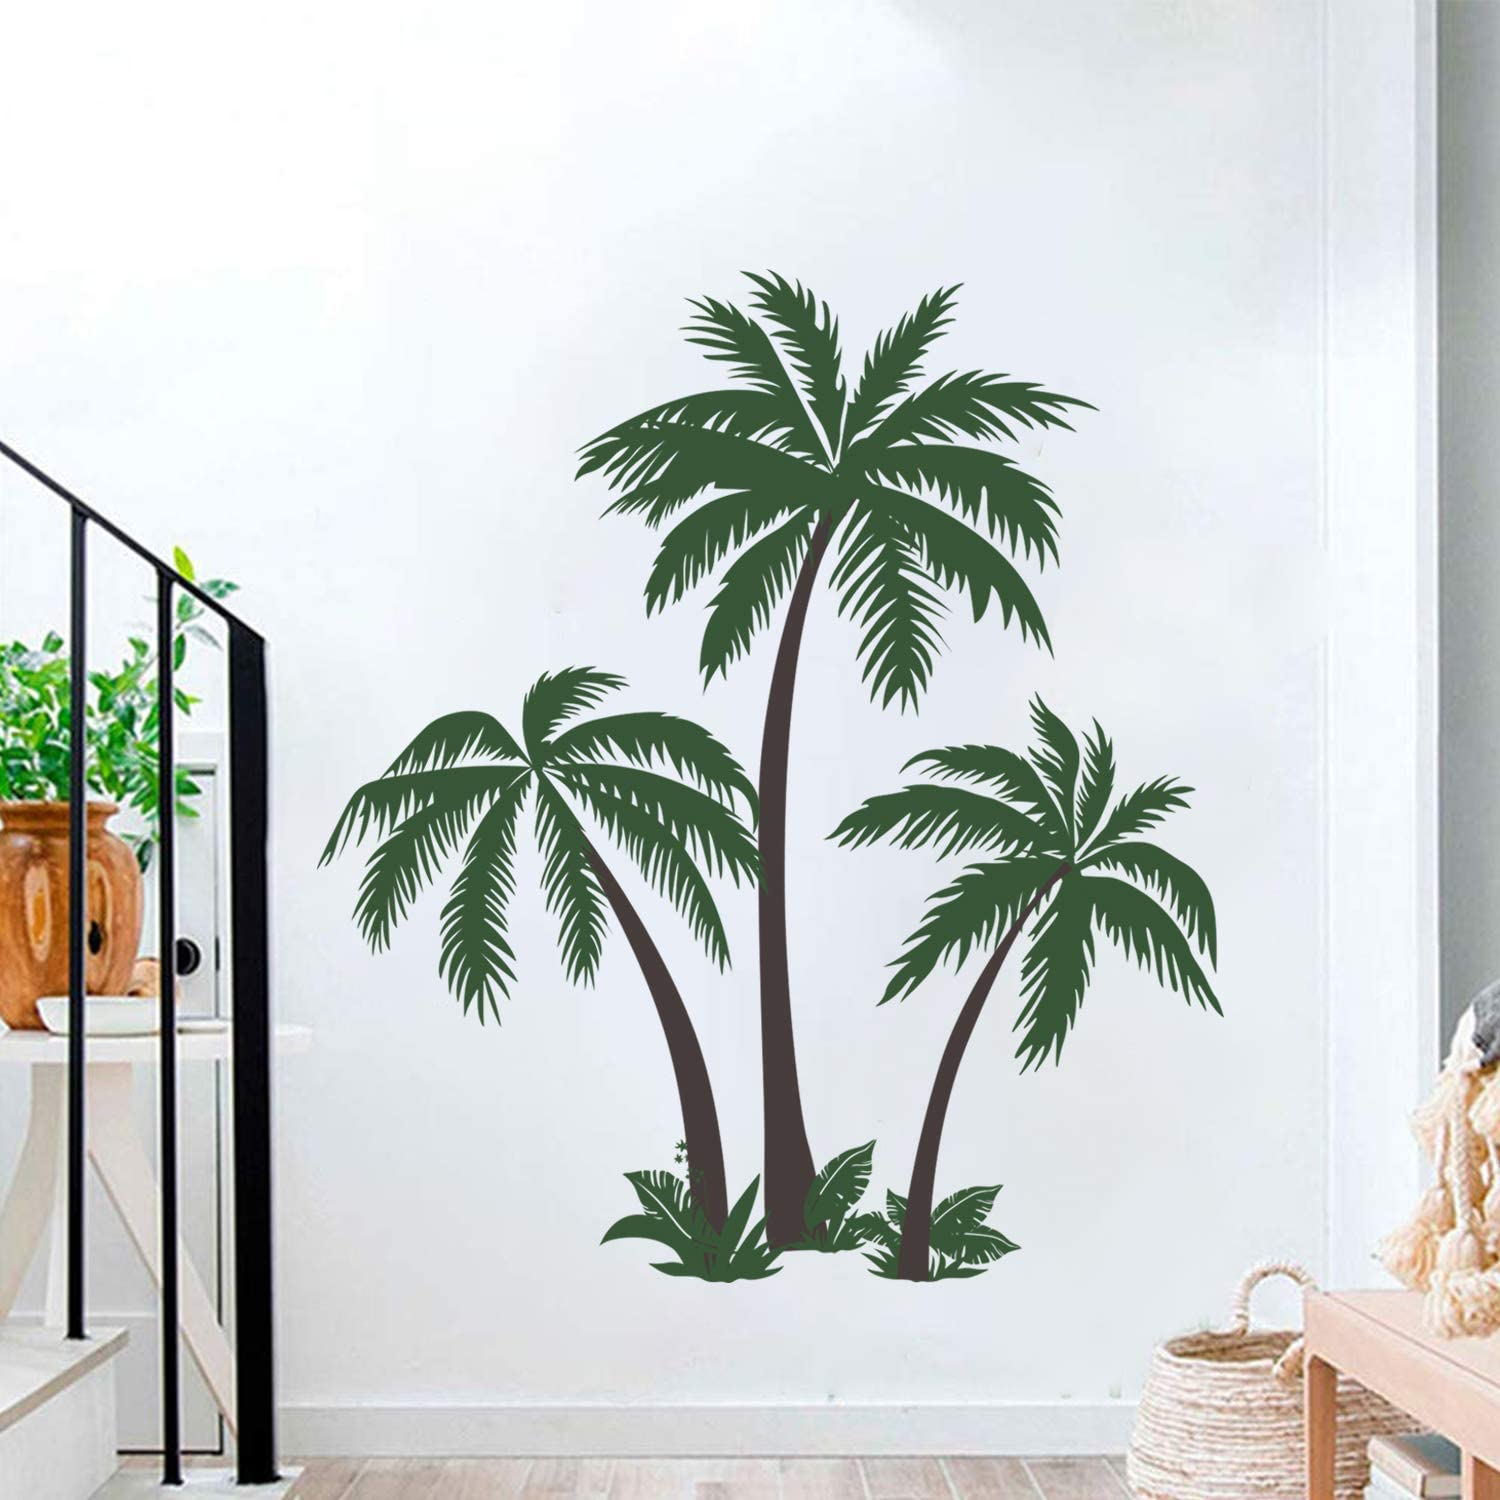 decalmile Large Palm Tree Wall Decals Tropical Tree Wall Stickers Bedroom Living Room TV Wall Art Home Decor (H: 49 Inch)